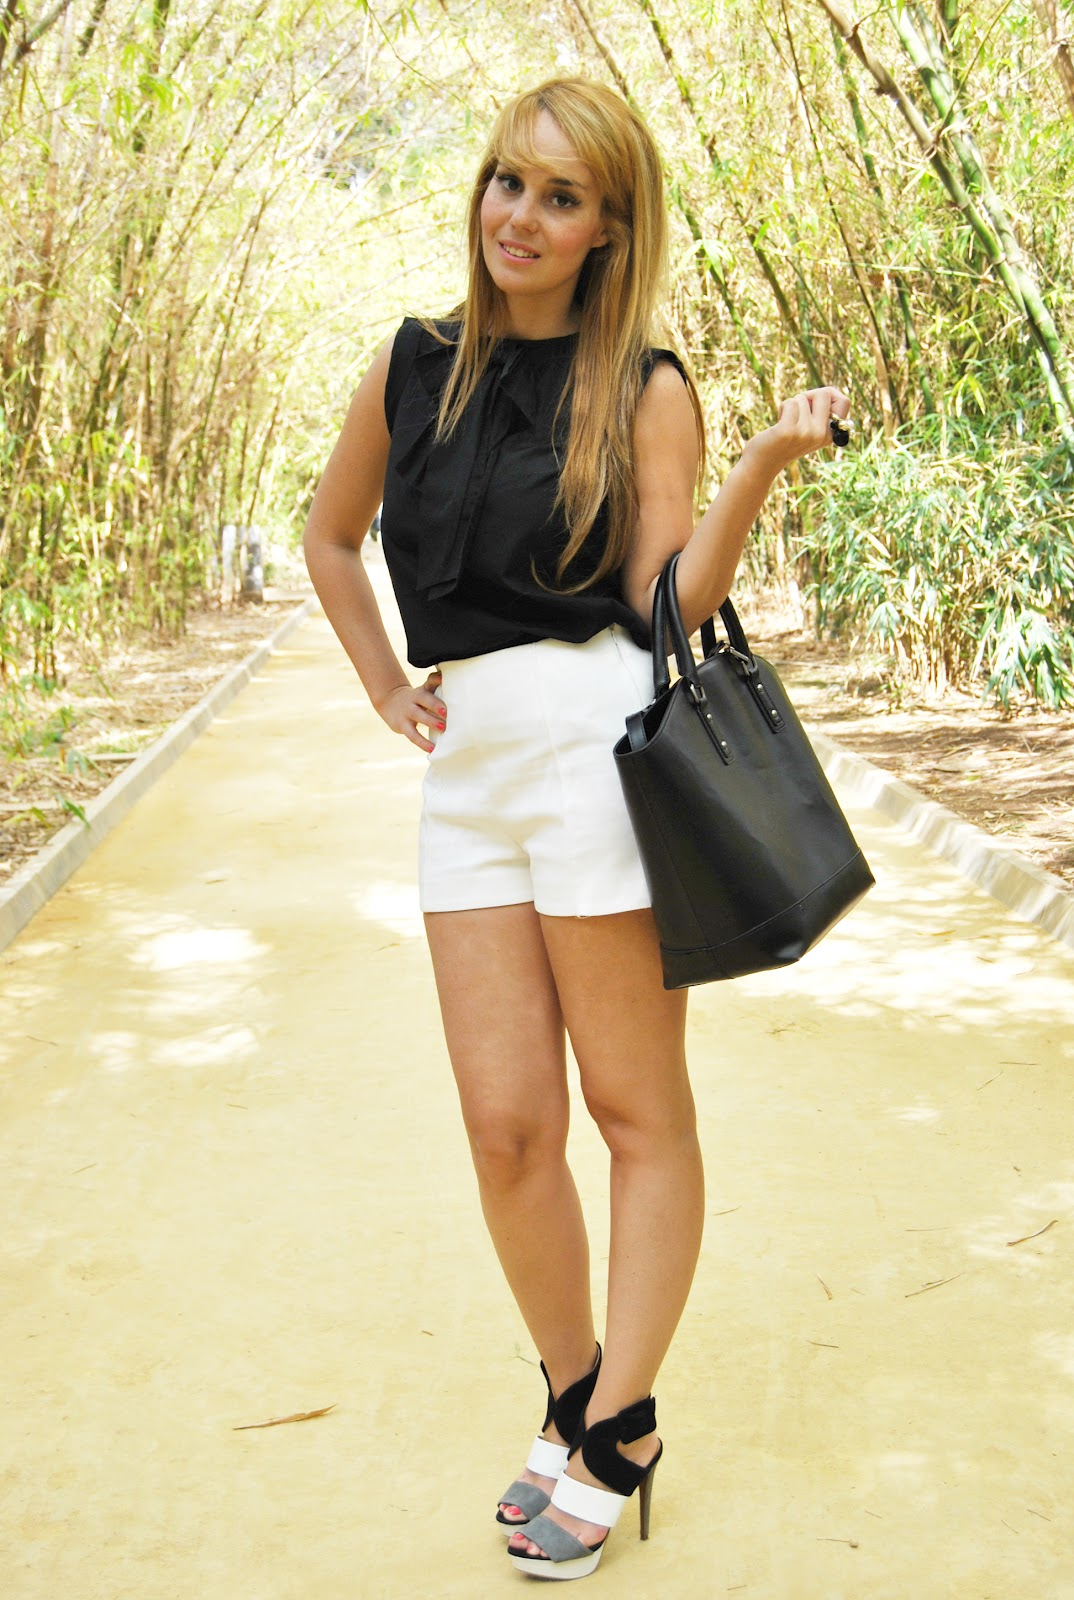 nery hdez, white shorts, black and white